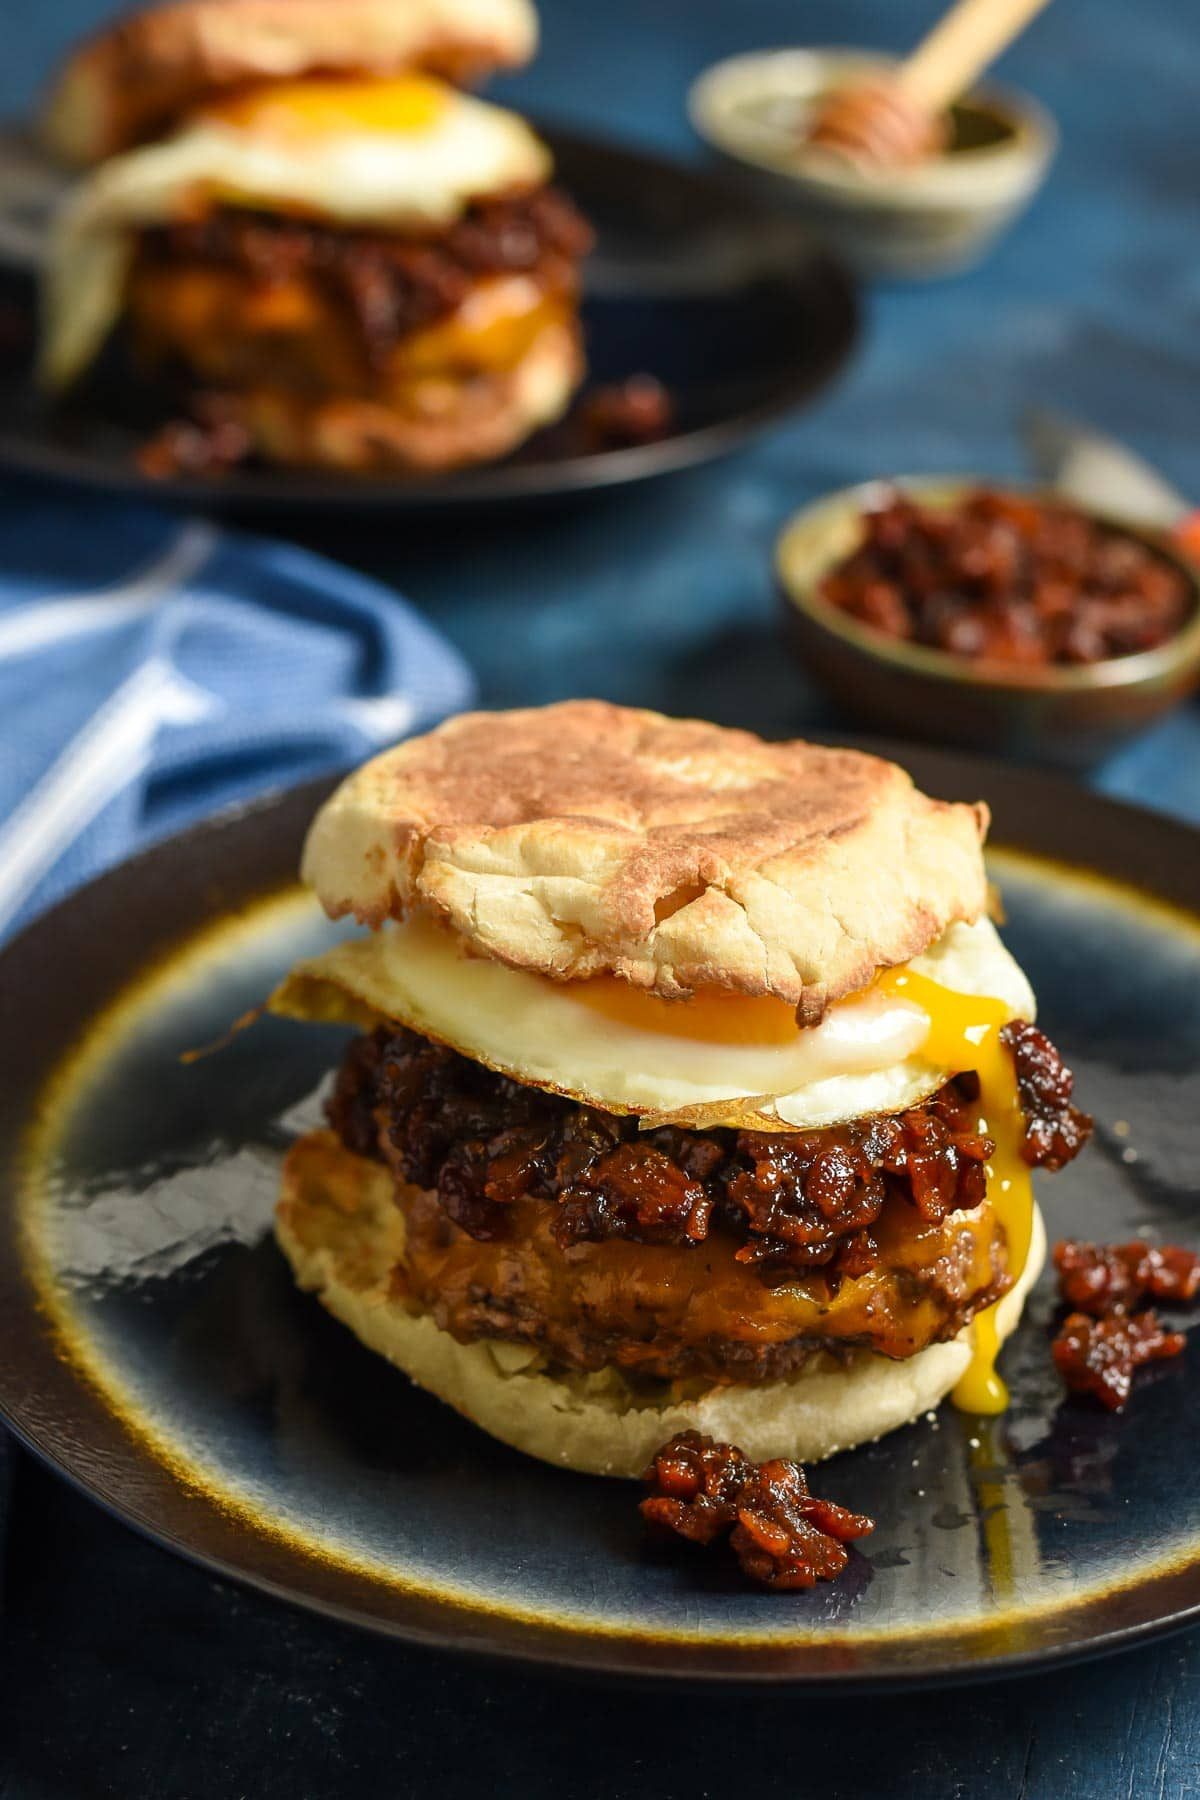 These Breakfast Burgers are smothered with cheese, a fried egg, and bourbon bacon jam for the ultimate breakfast sandwich.